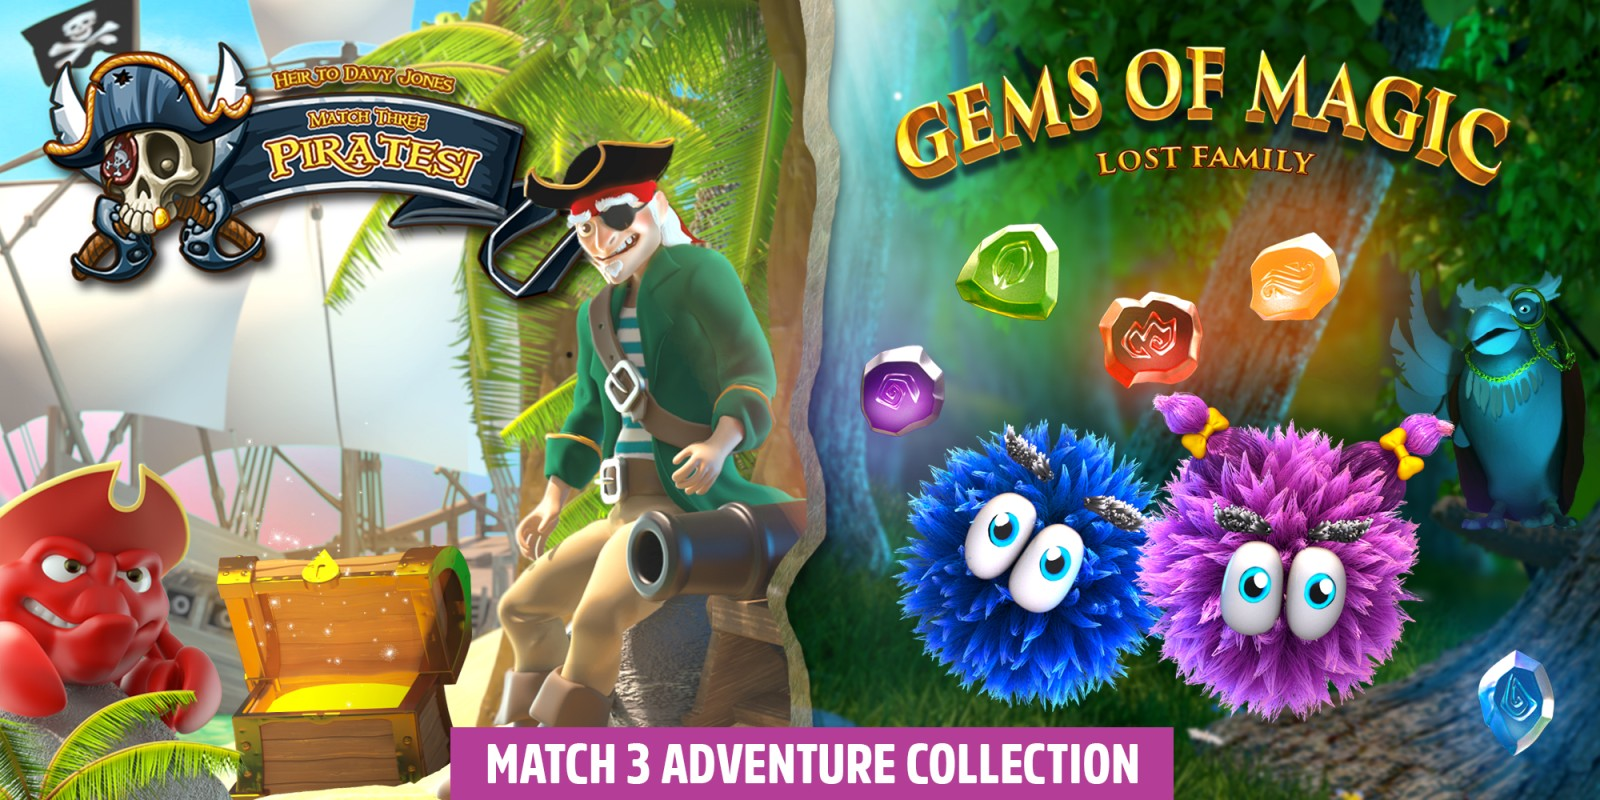 Match 3 Adventure Collection